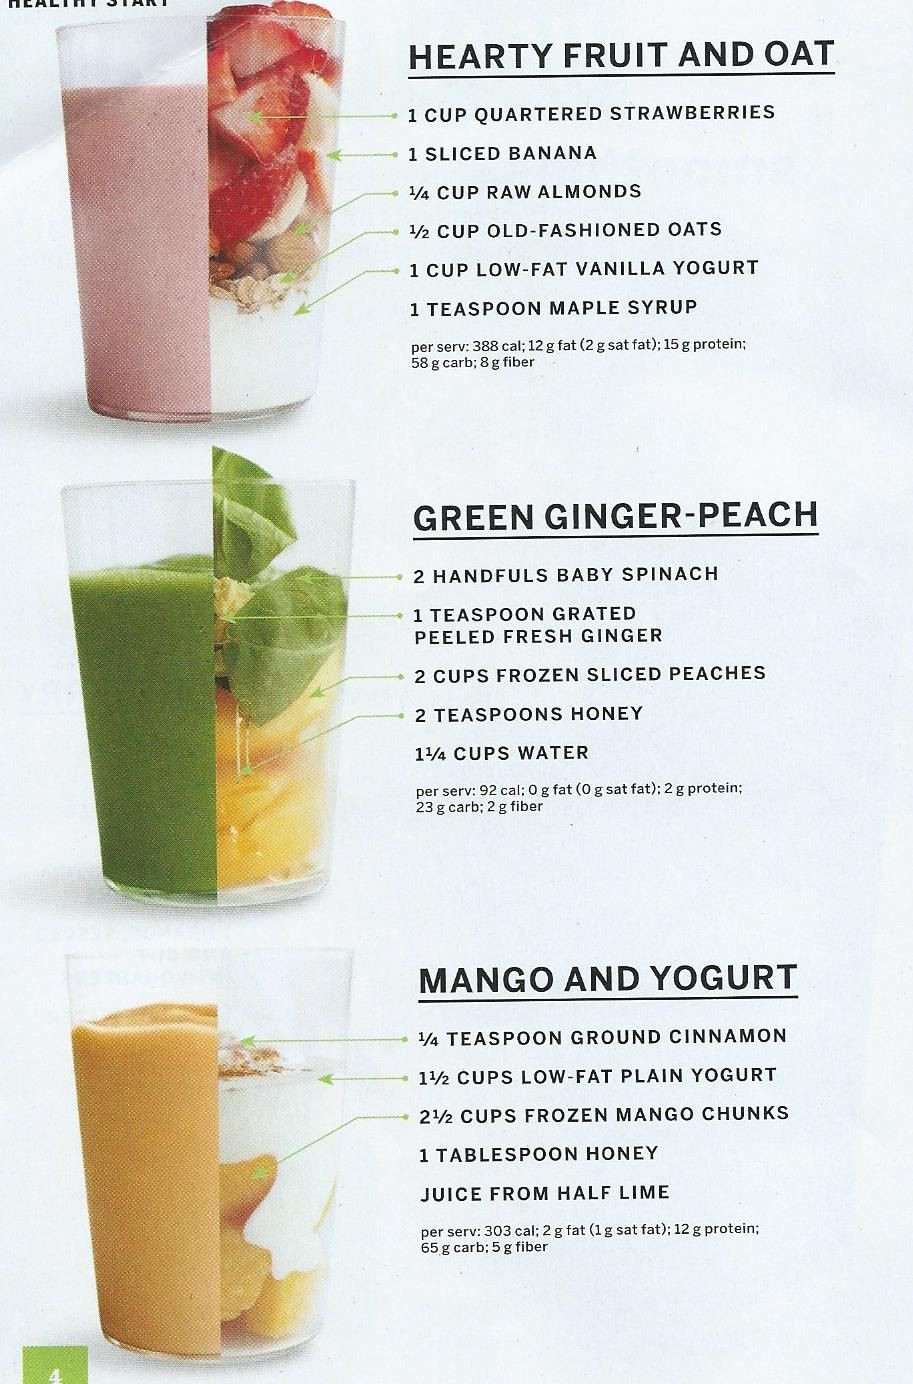 Healthy Easy Smoothie Recipes  FREE 12 Day Green Smoothie E Course